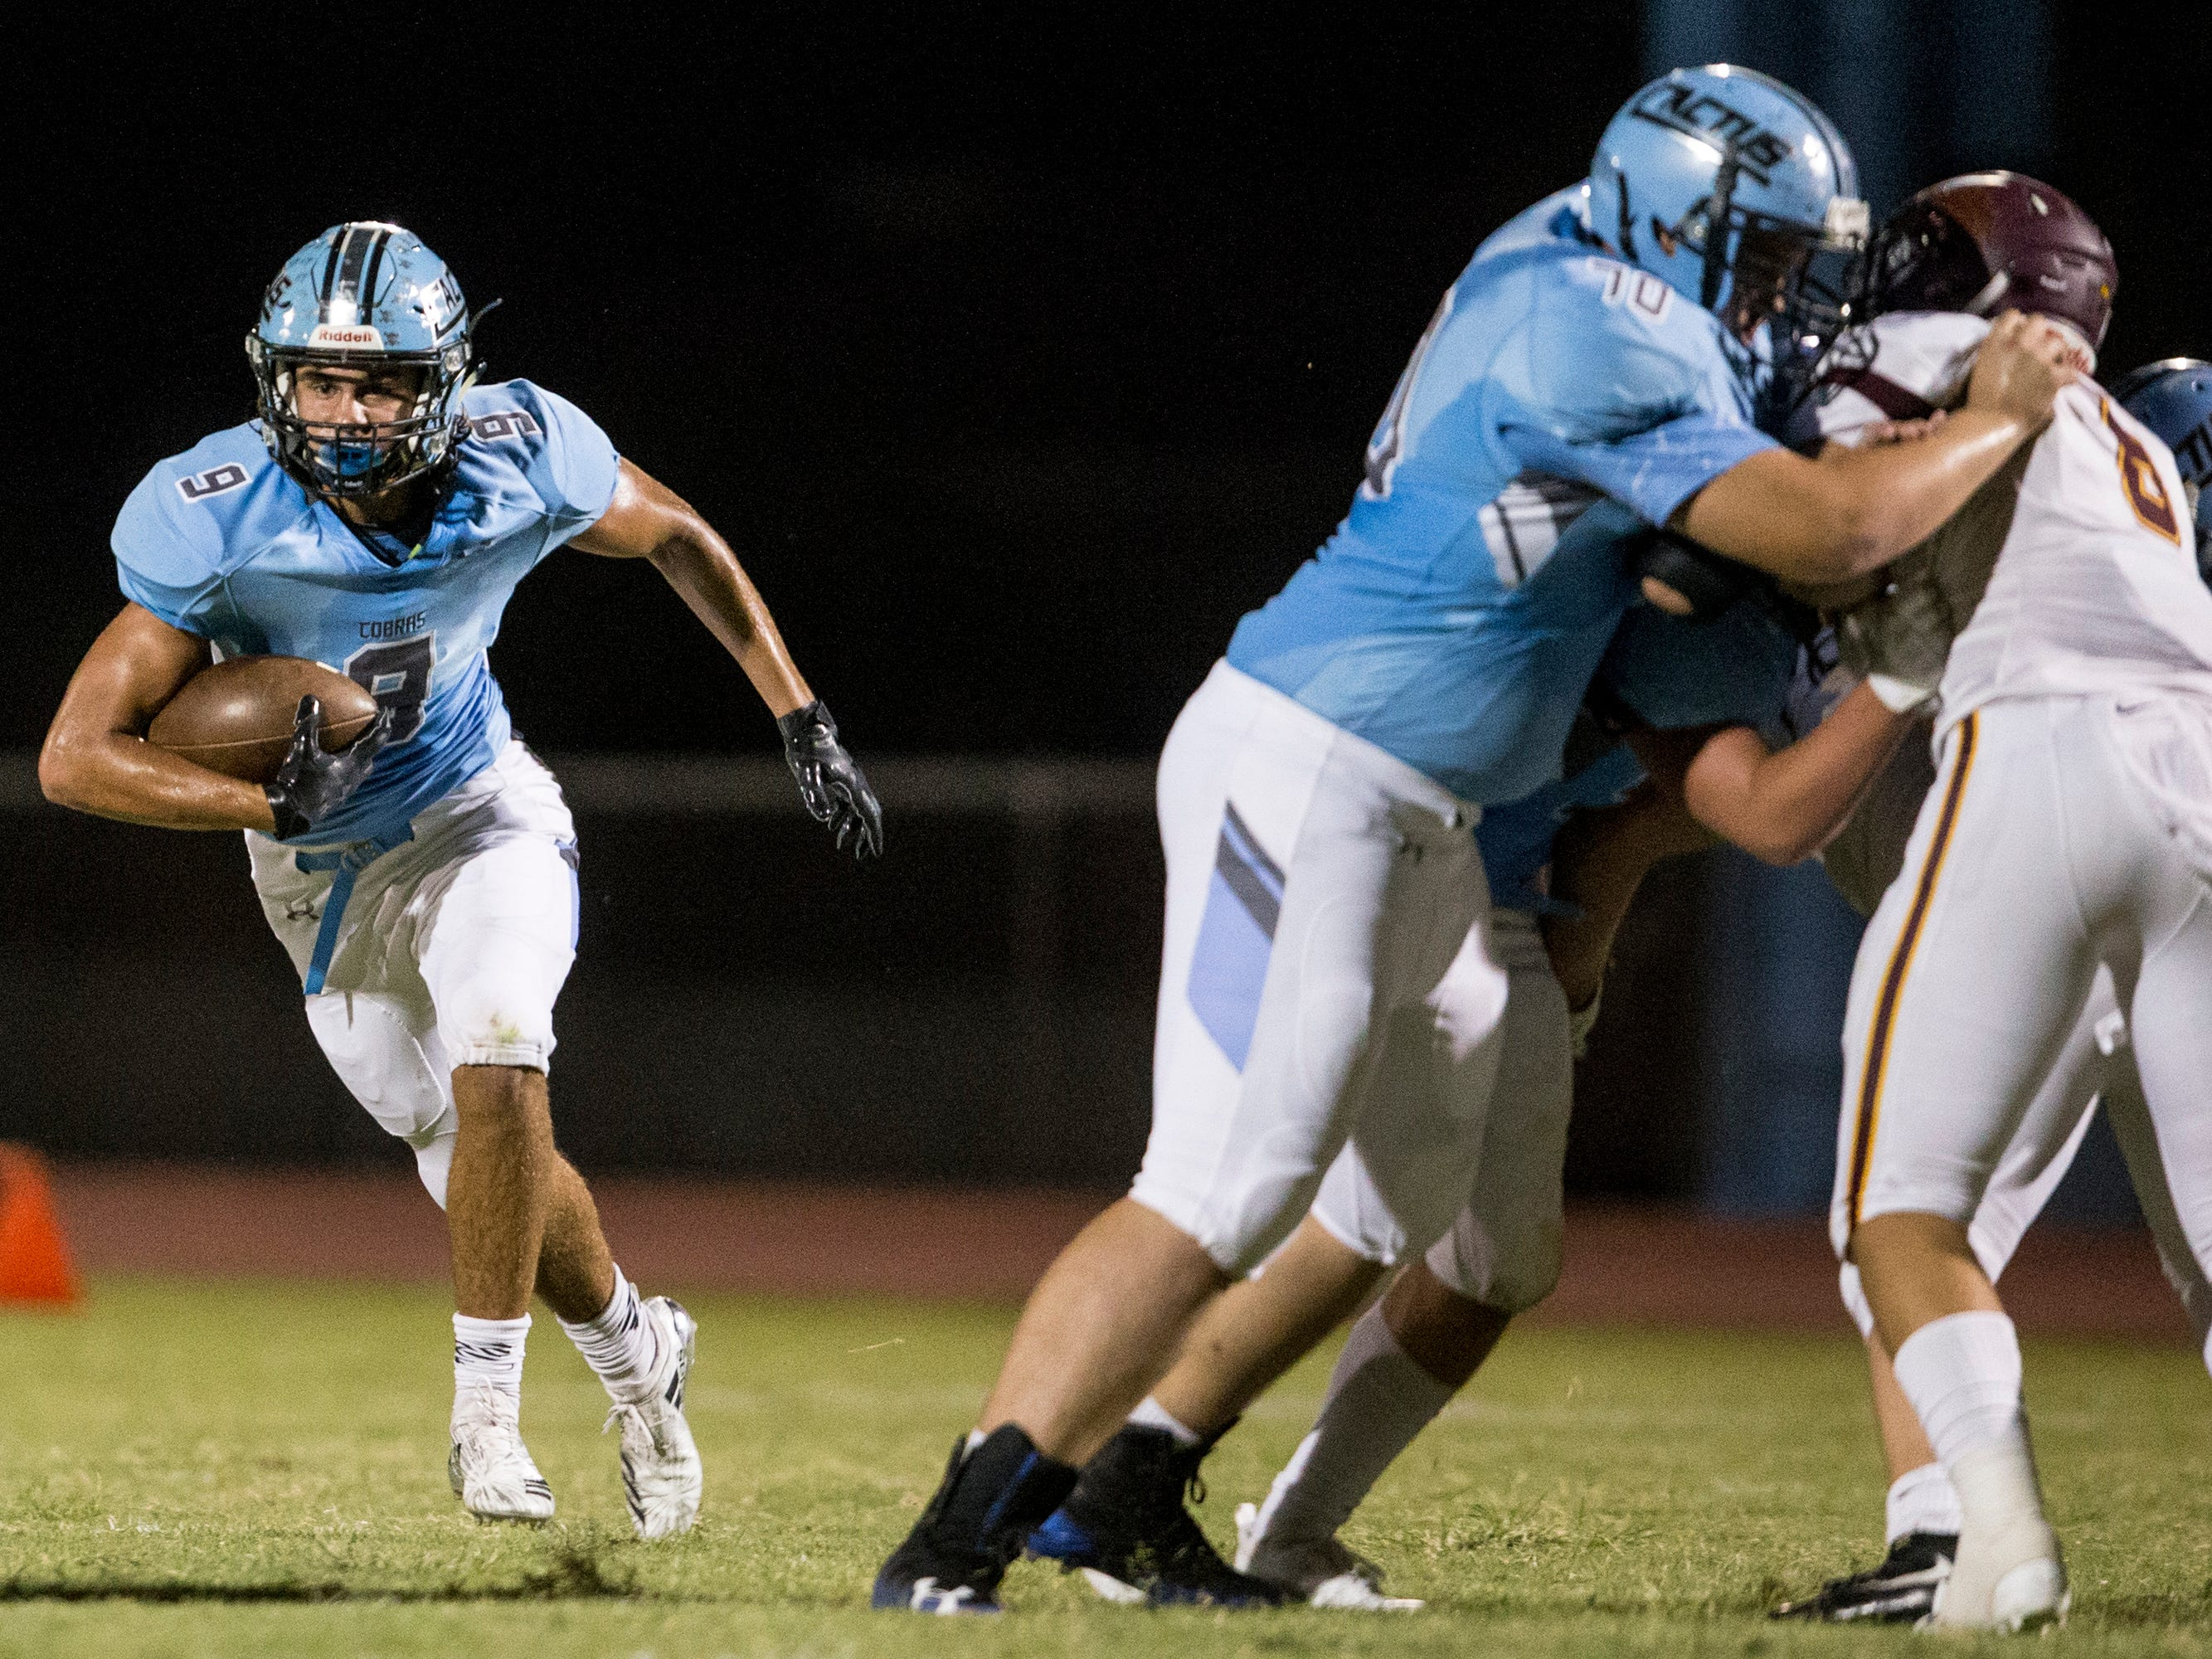 Cactus' Zaach Cullop rushes against Salpointe in the 1st quarter on Friday, Sept. 14, 2018, at Cactus High School in Glendale, Ariz.#azhsfb